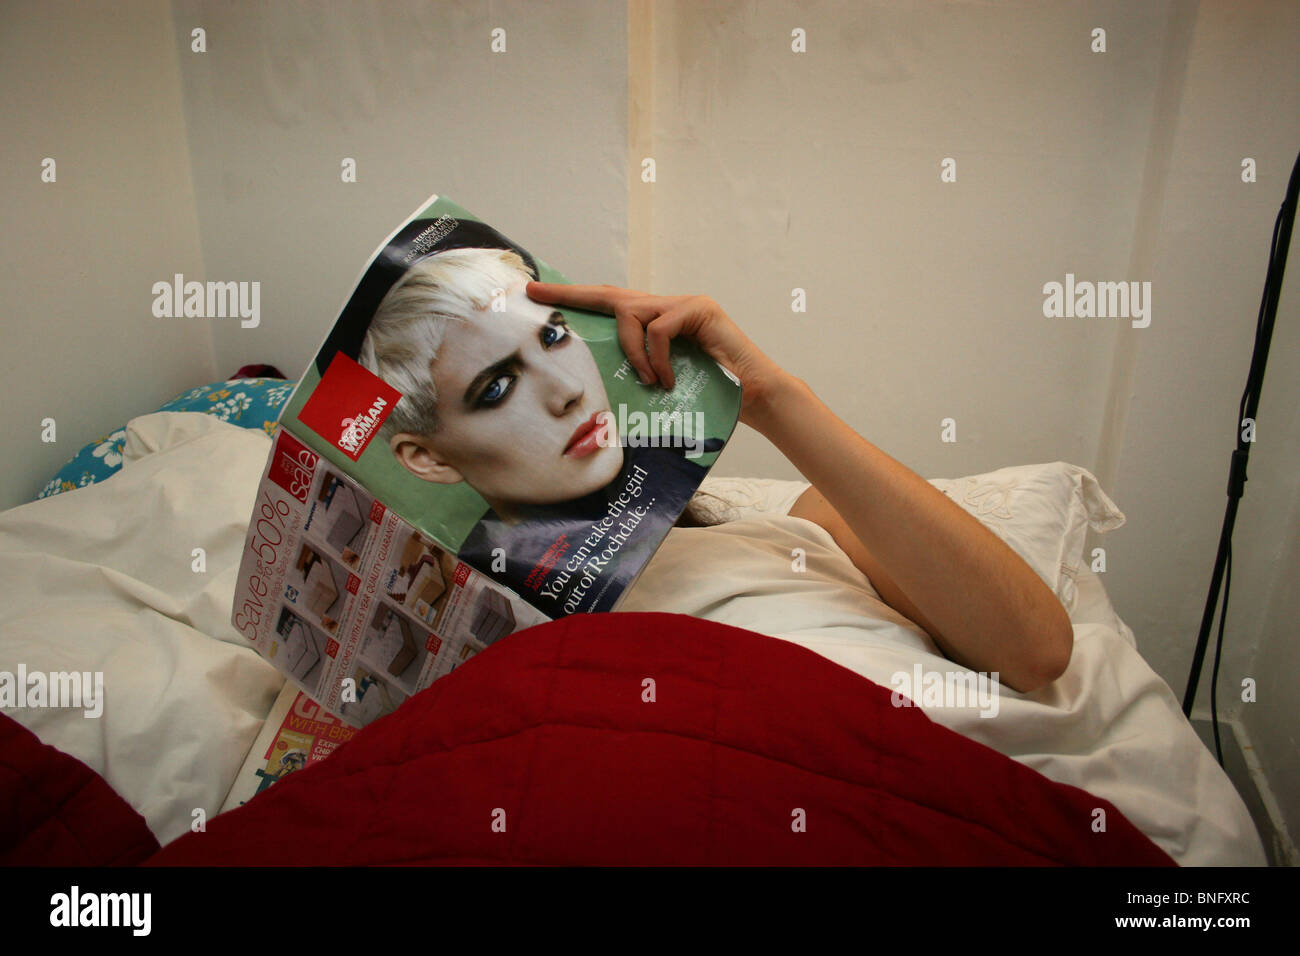 Woman in bed reading a copy of the Observer Woman featuring Agyness Deyn on the front cover, UK. - Stock Image